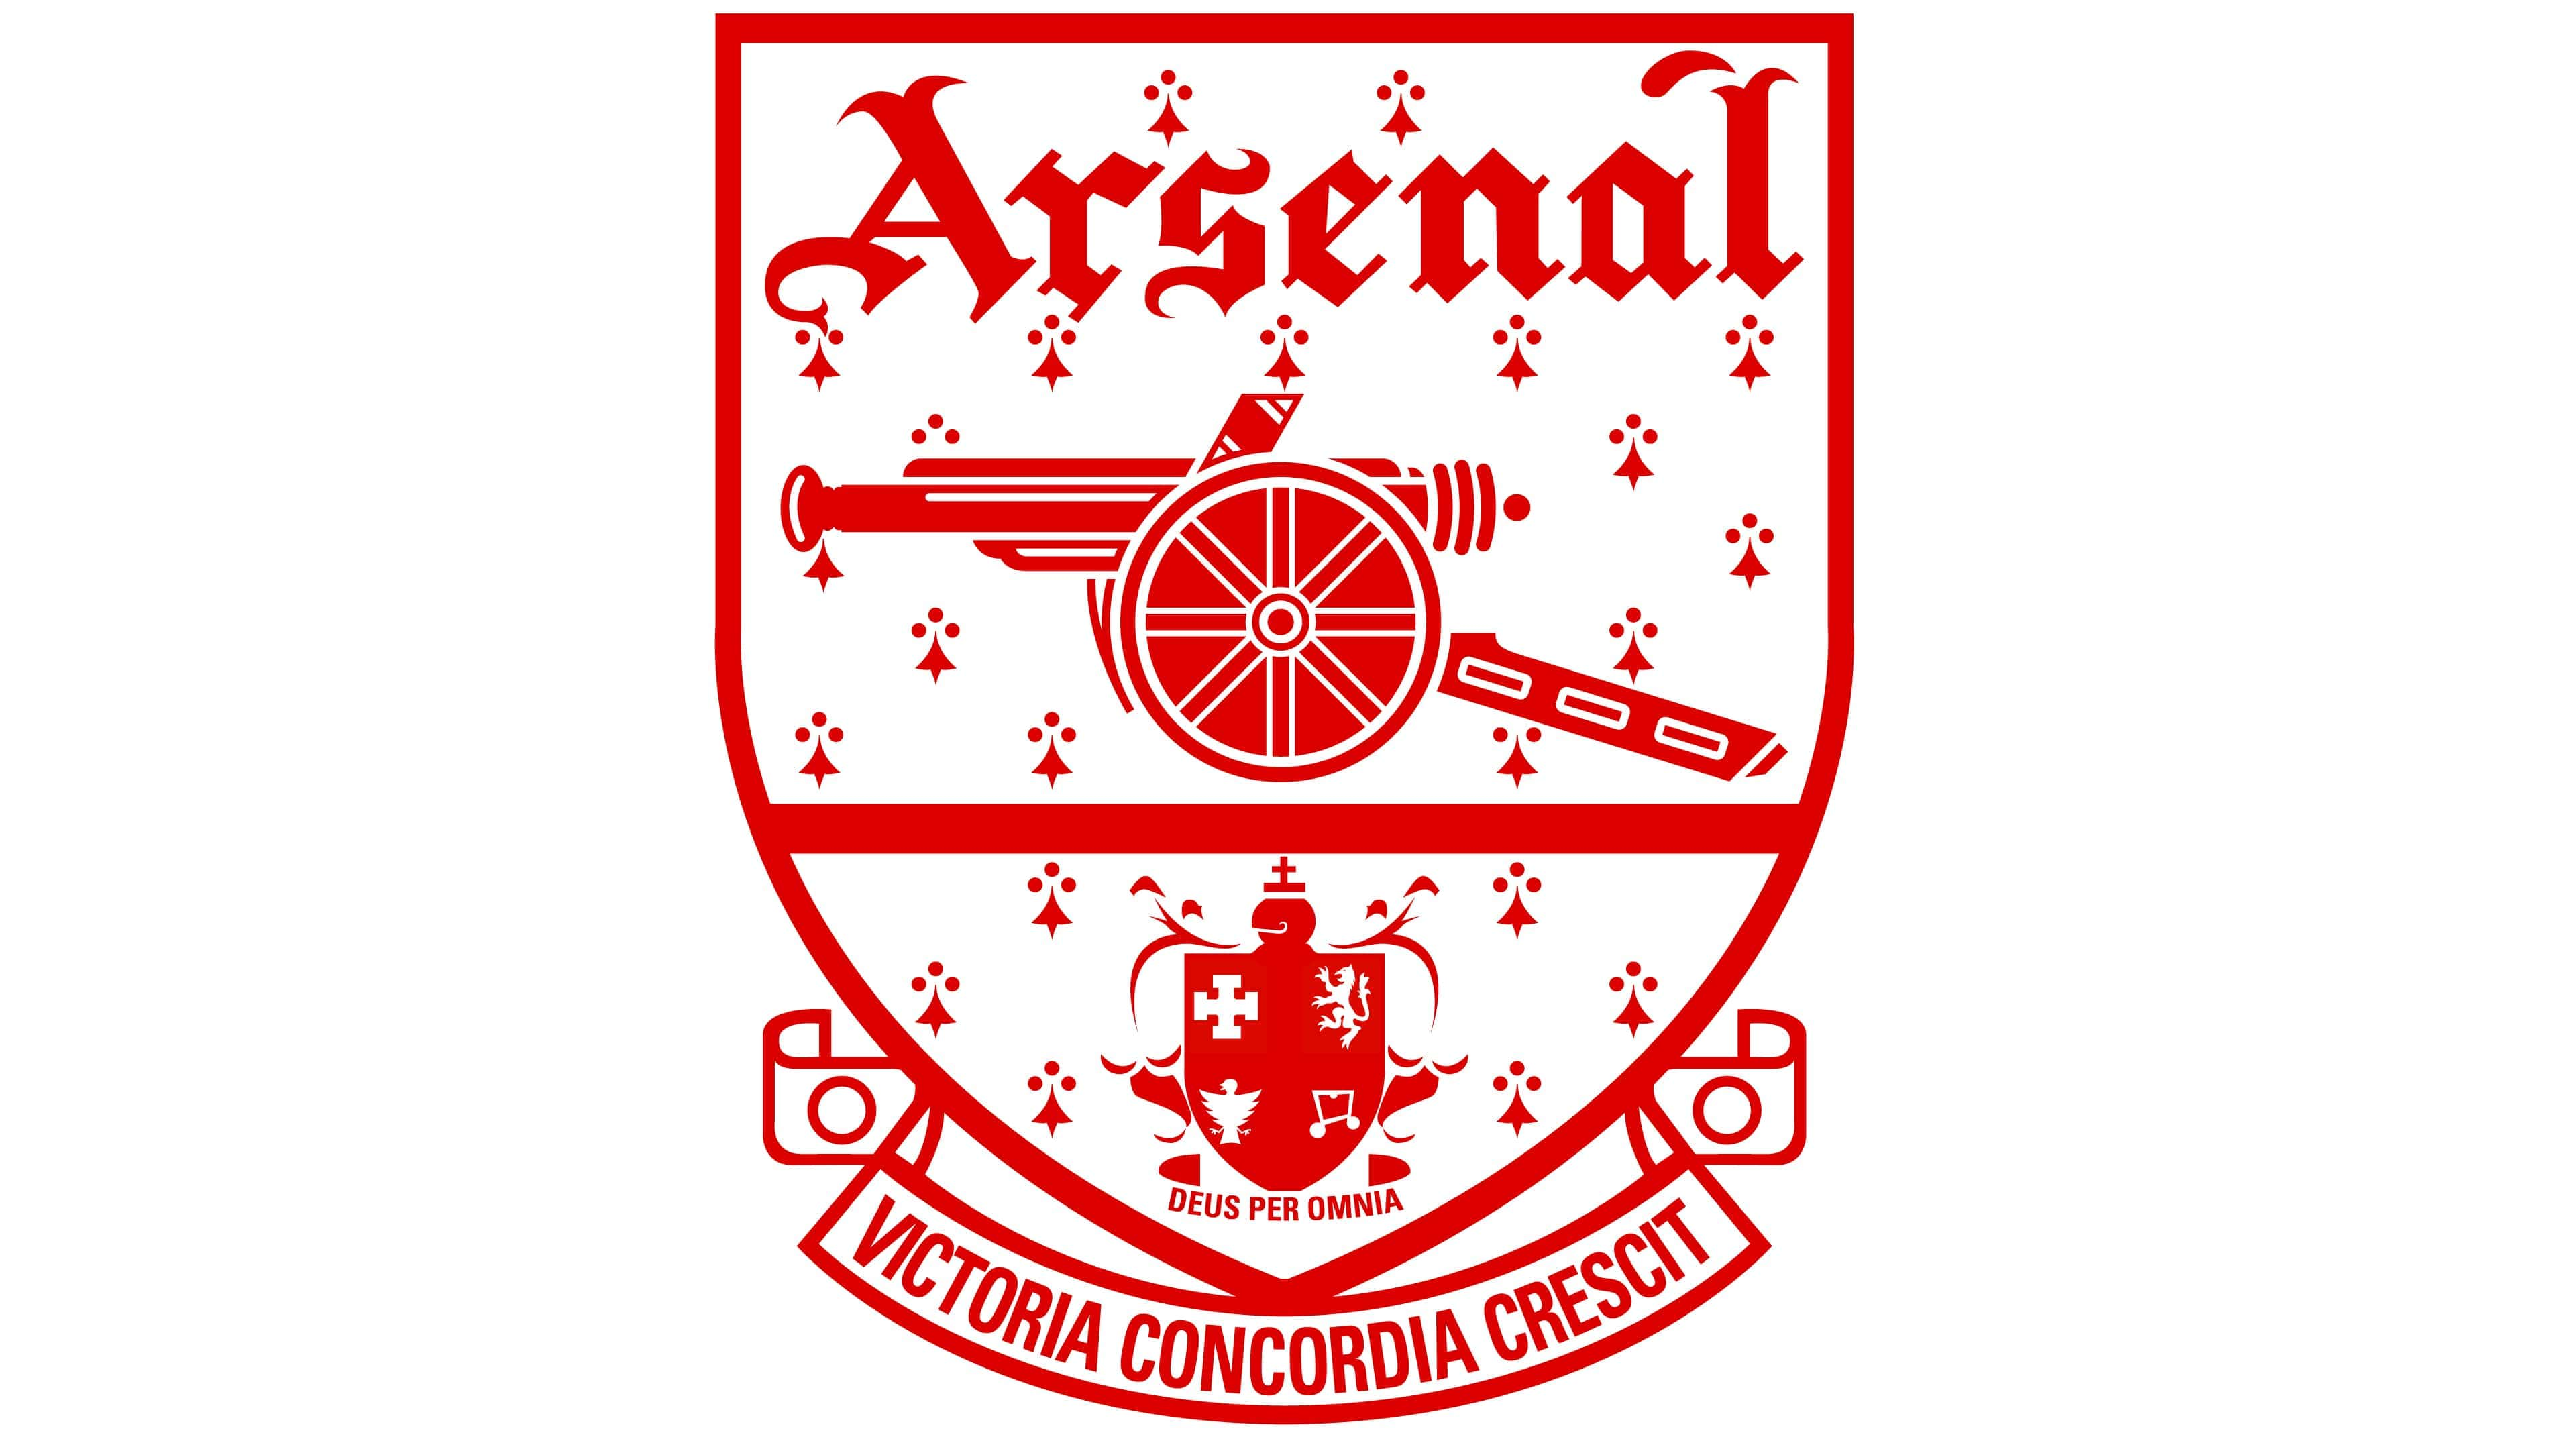 Arsenal Logo The Most Famous Brands And Company Logos In The World